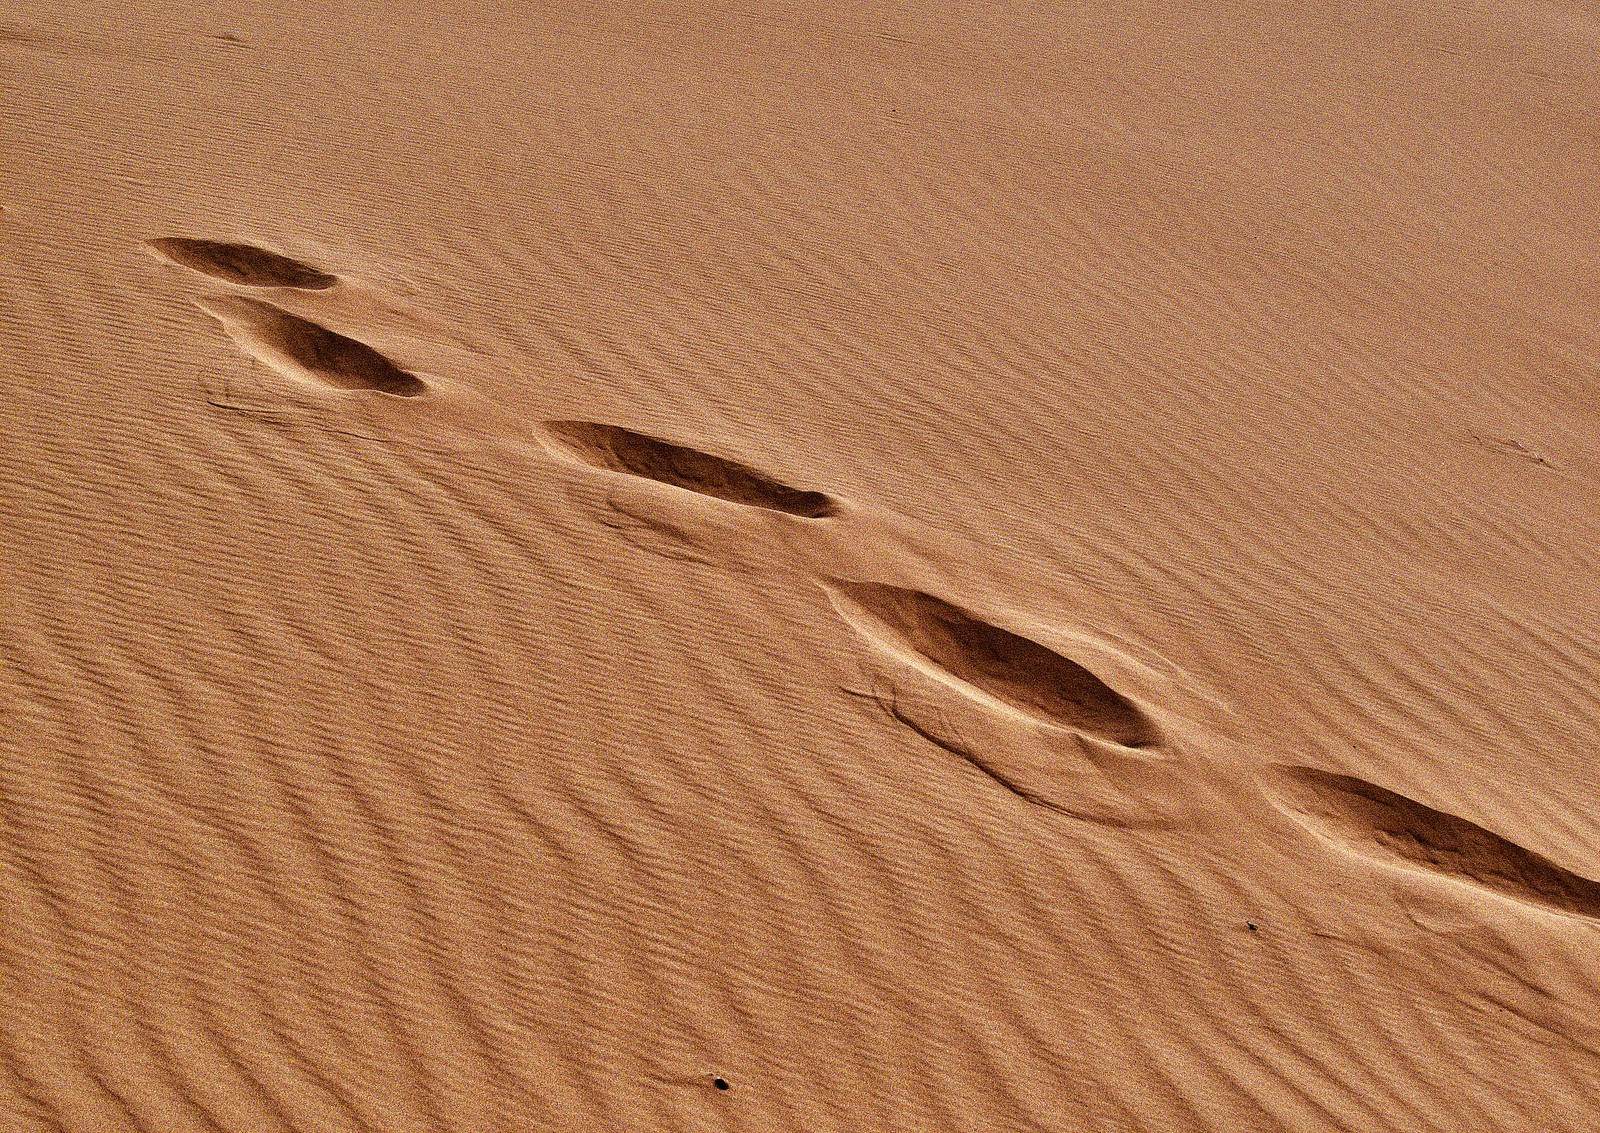 Footprints in the Desert Sand u2014 Edward